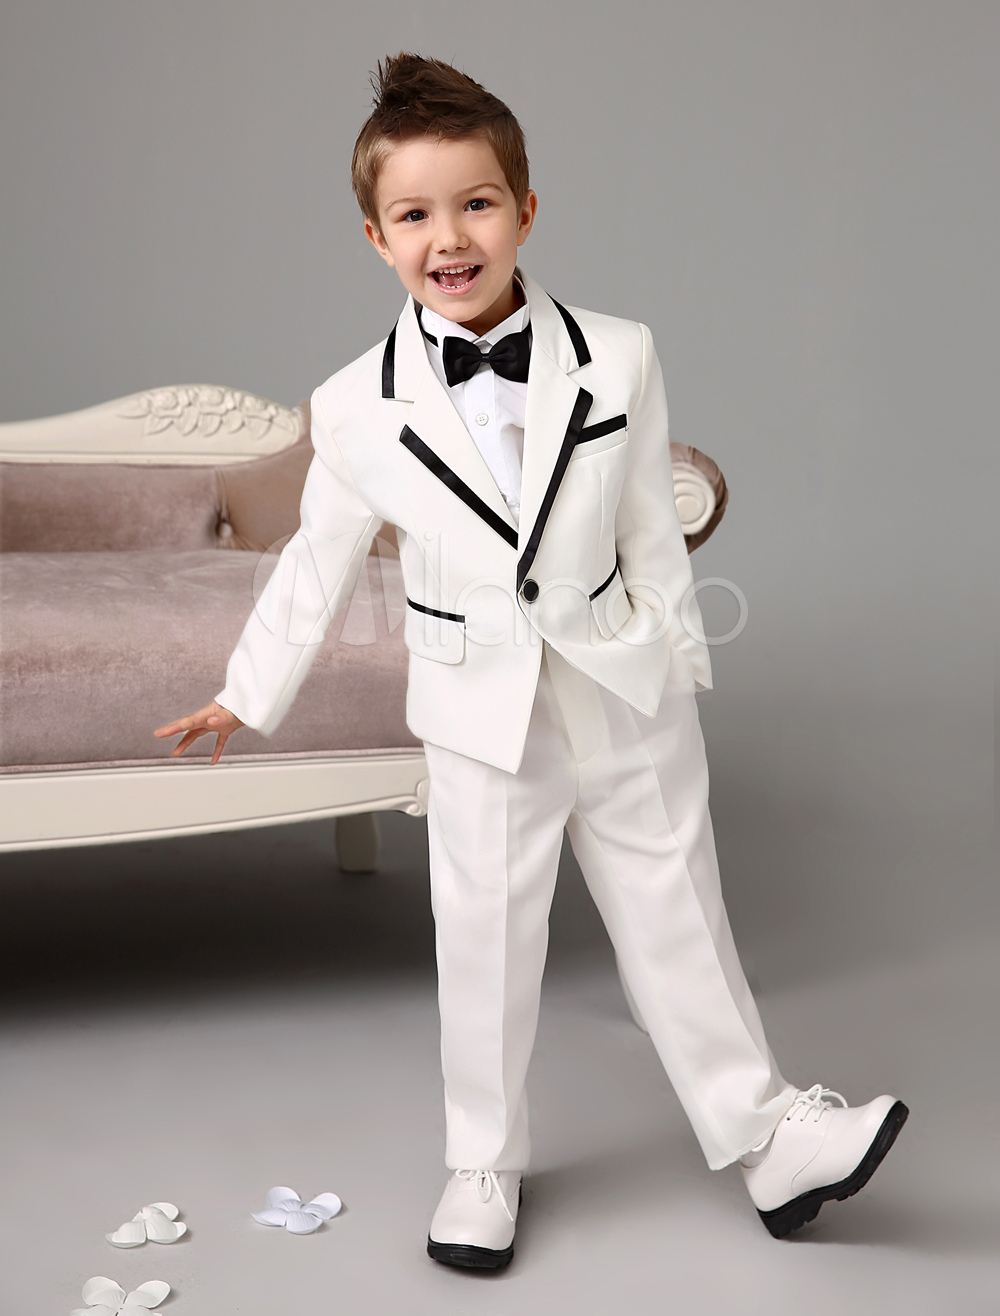 Boy Suit Set Wedding Tuxedo Jacket Pants Shirts Bow Tie Ivory Kids Formal Wear 4 Pcs Ring Bearer Suit